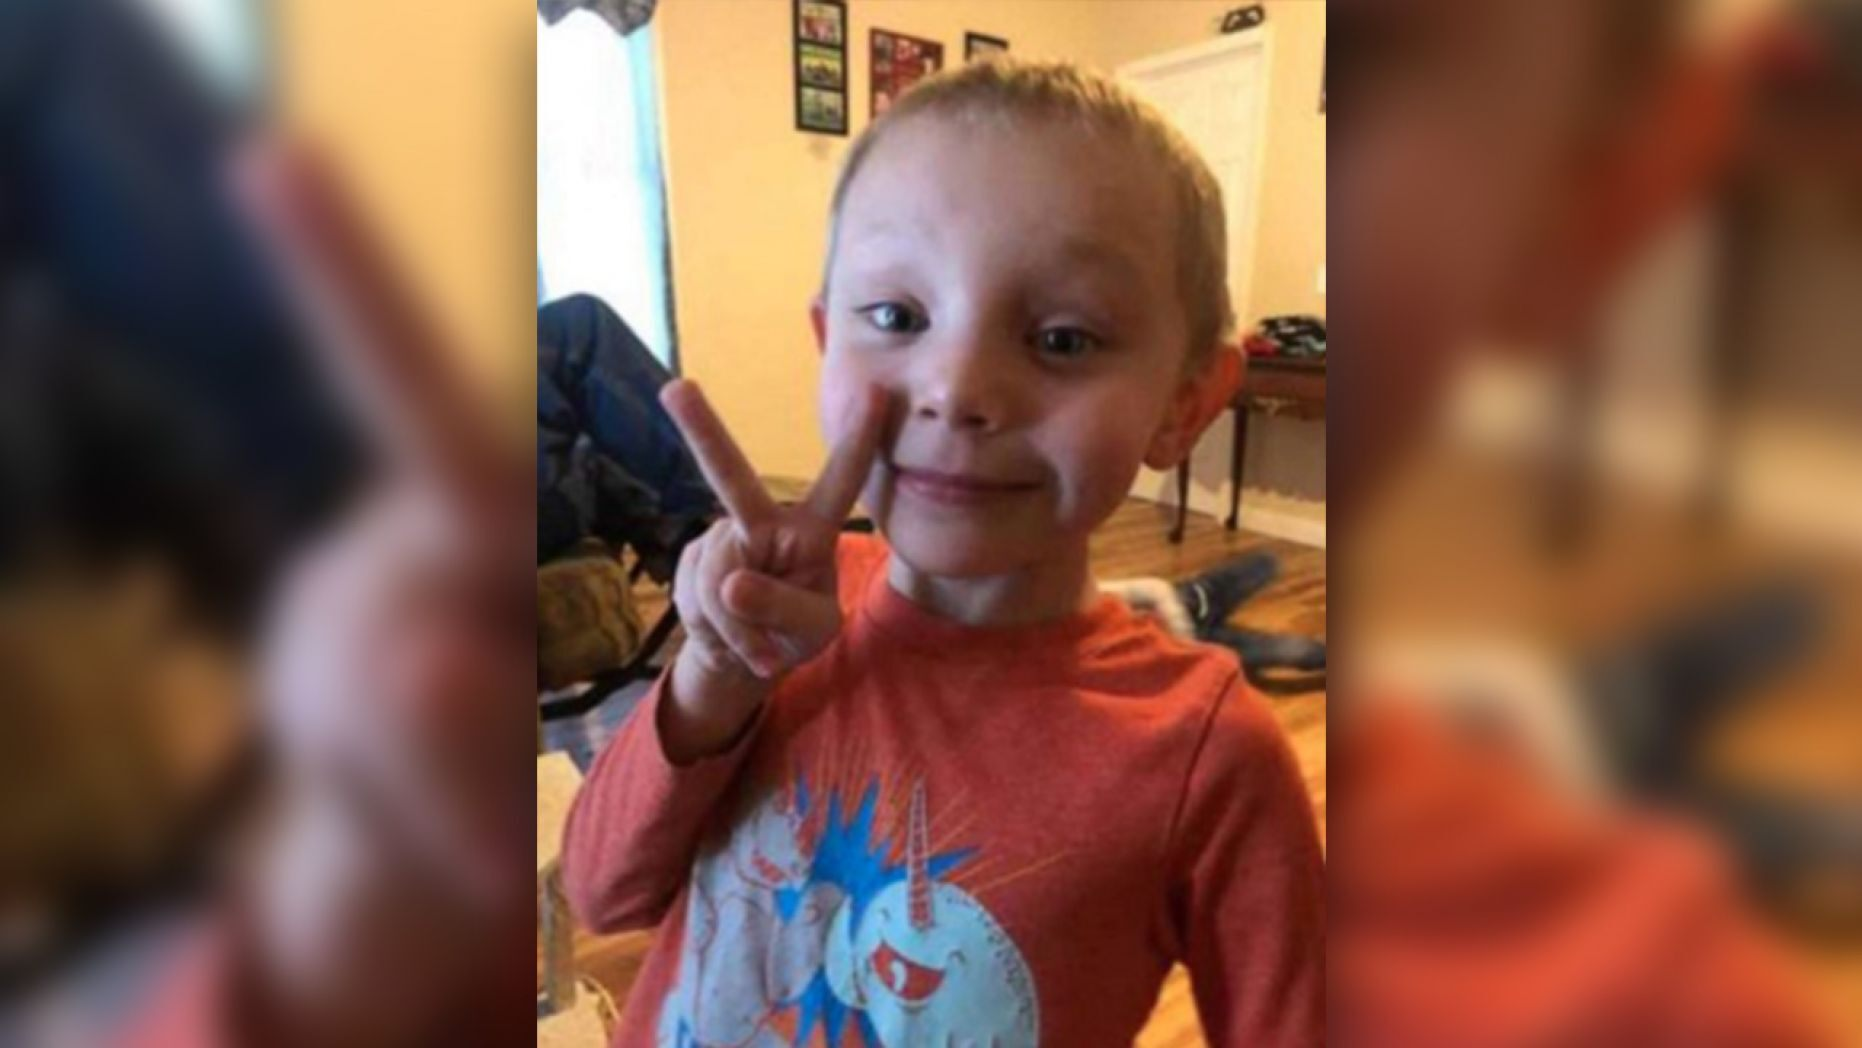 Police say they have found the body of 5-year-old Beau Brennen Belson floating in a pond near his family's house.